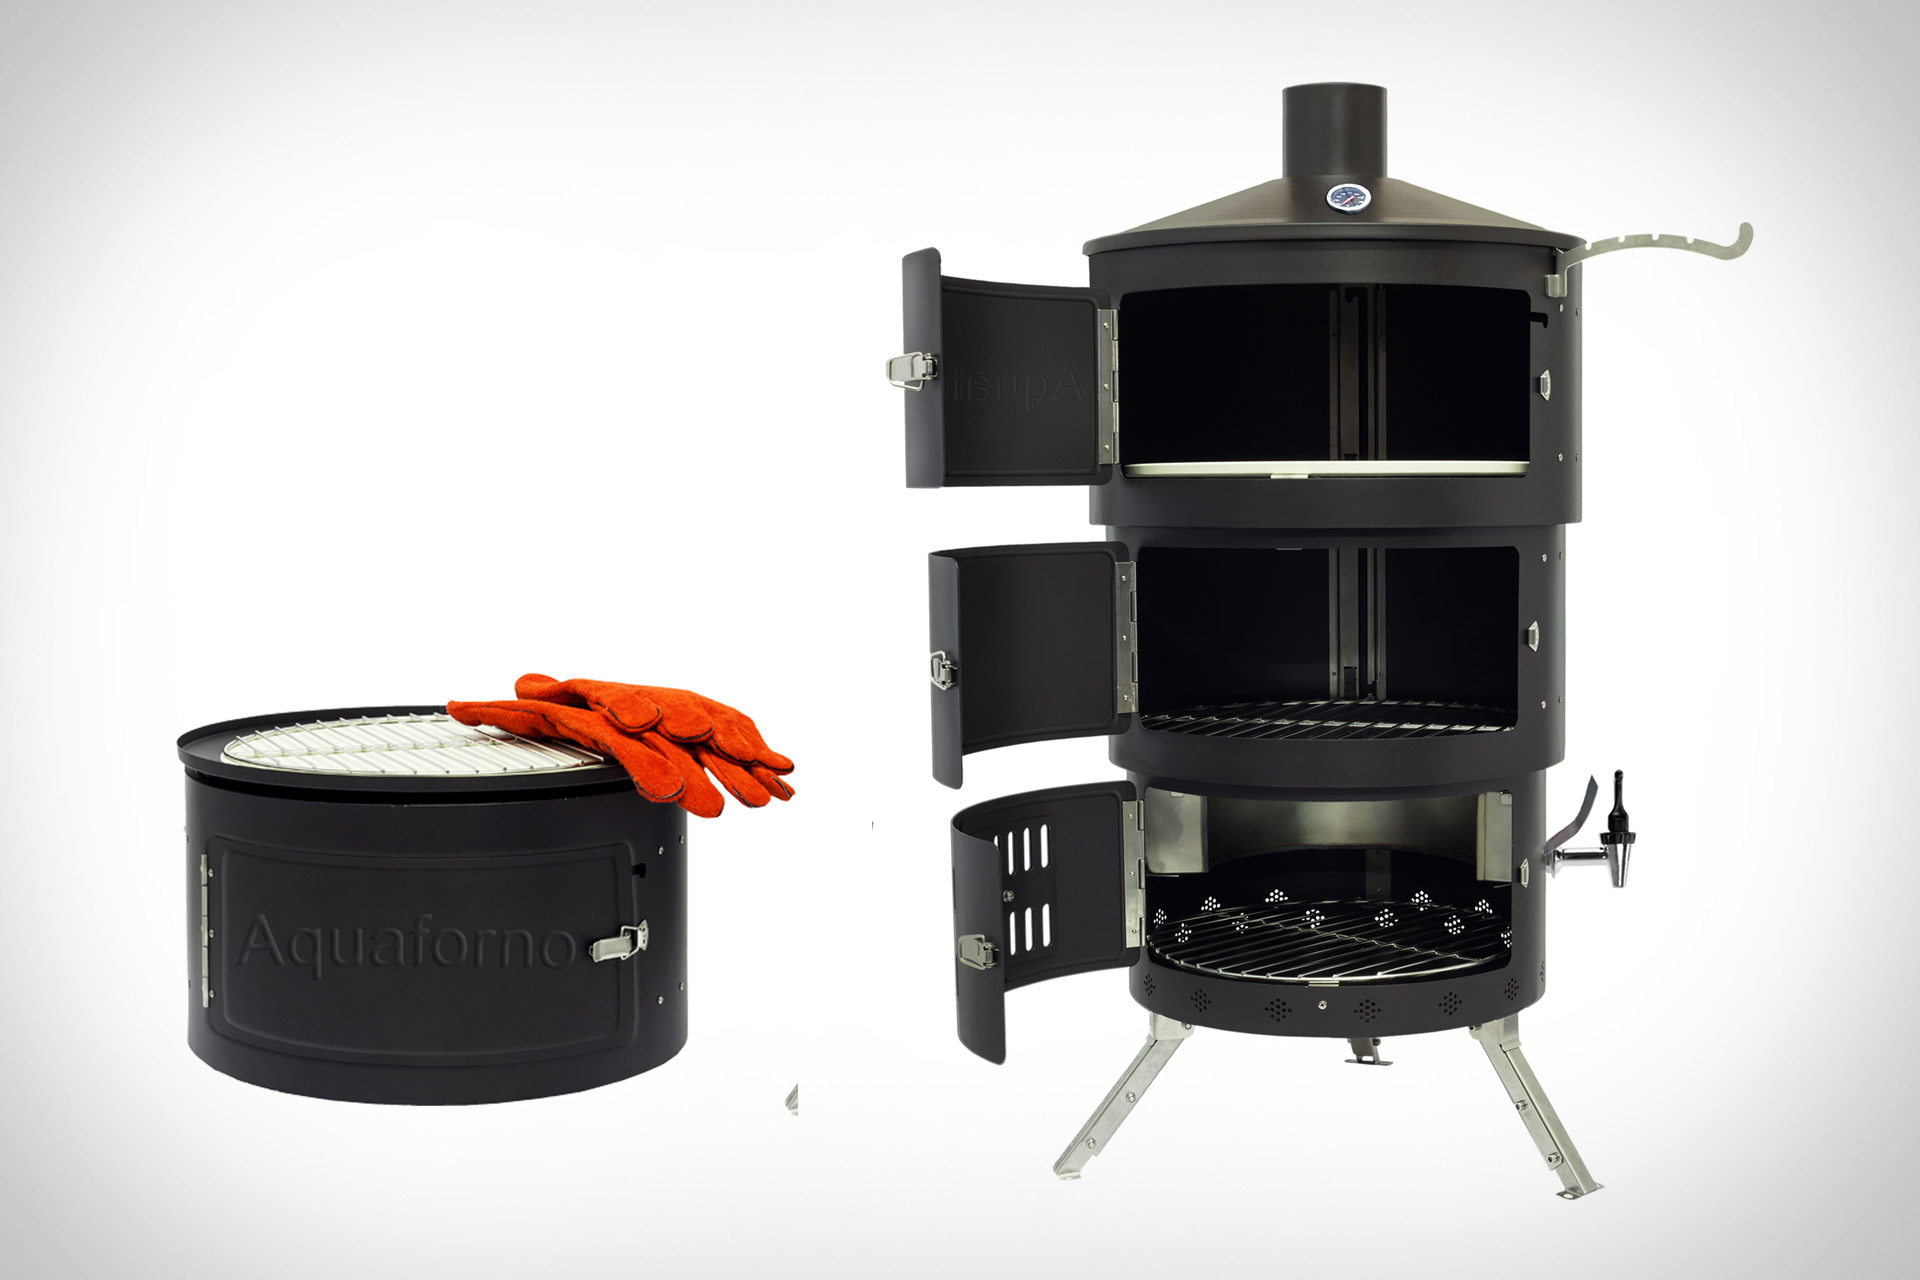 Aquaforno Ii Outdoor Cooking Stove Uncrate